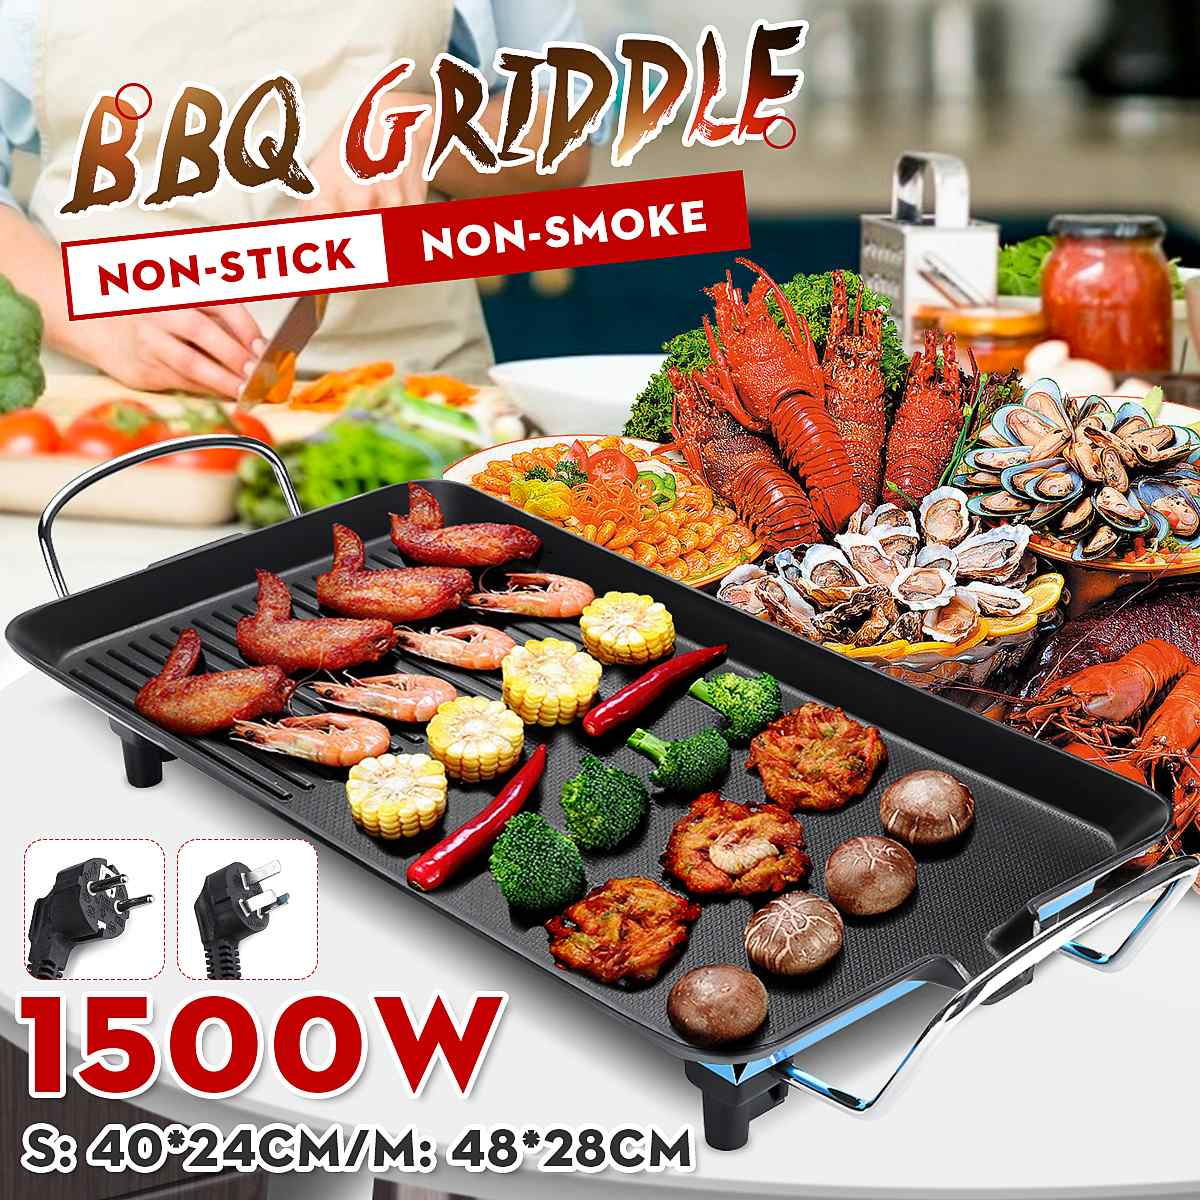 1500W Household Electric Ovens Smokeless Nonstick Barbecue Electric hotplate BBQ Tools Teppanyaki Grilled Meat Pan 220V/110V|Electric Grills & Electric Griddles|   - AliExpress